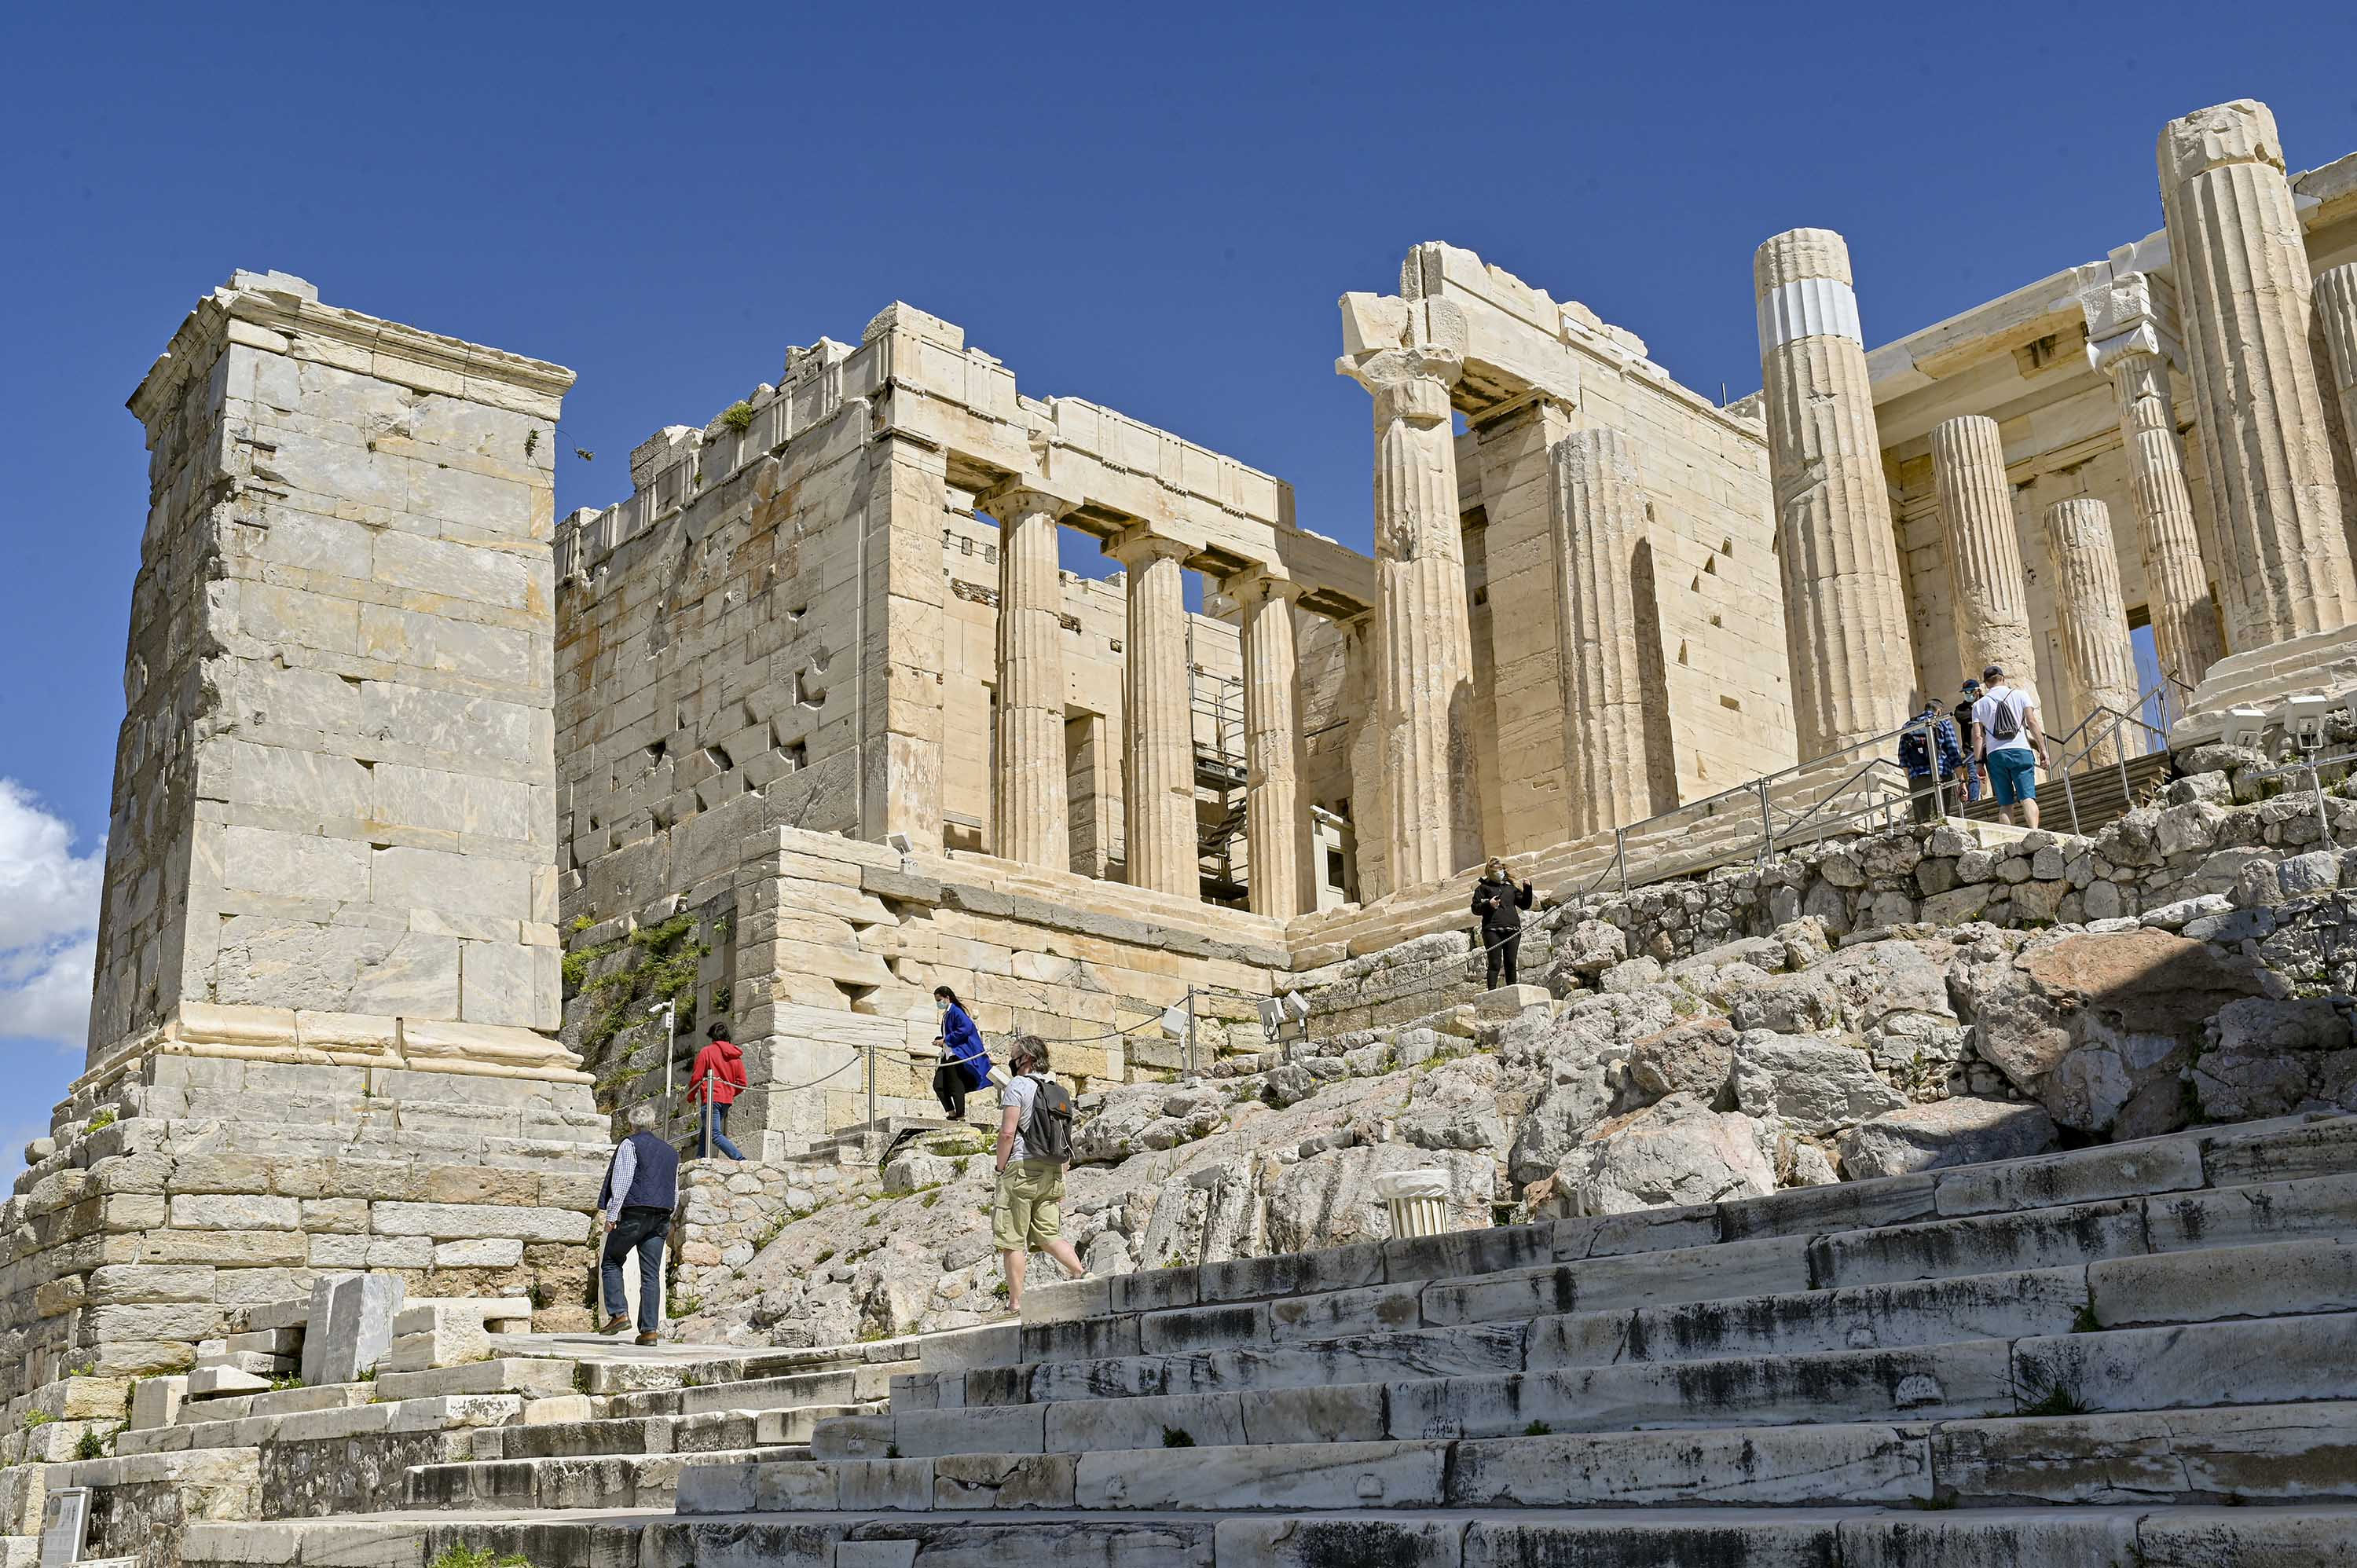 Visitors tour the the Athenian Acropolis on March 22, in Athens, Greece, after the site was reopened following the lifting of coronavirus restrictions.